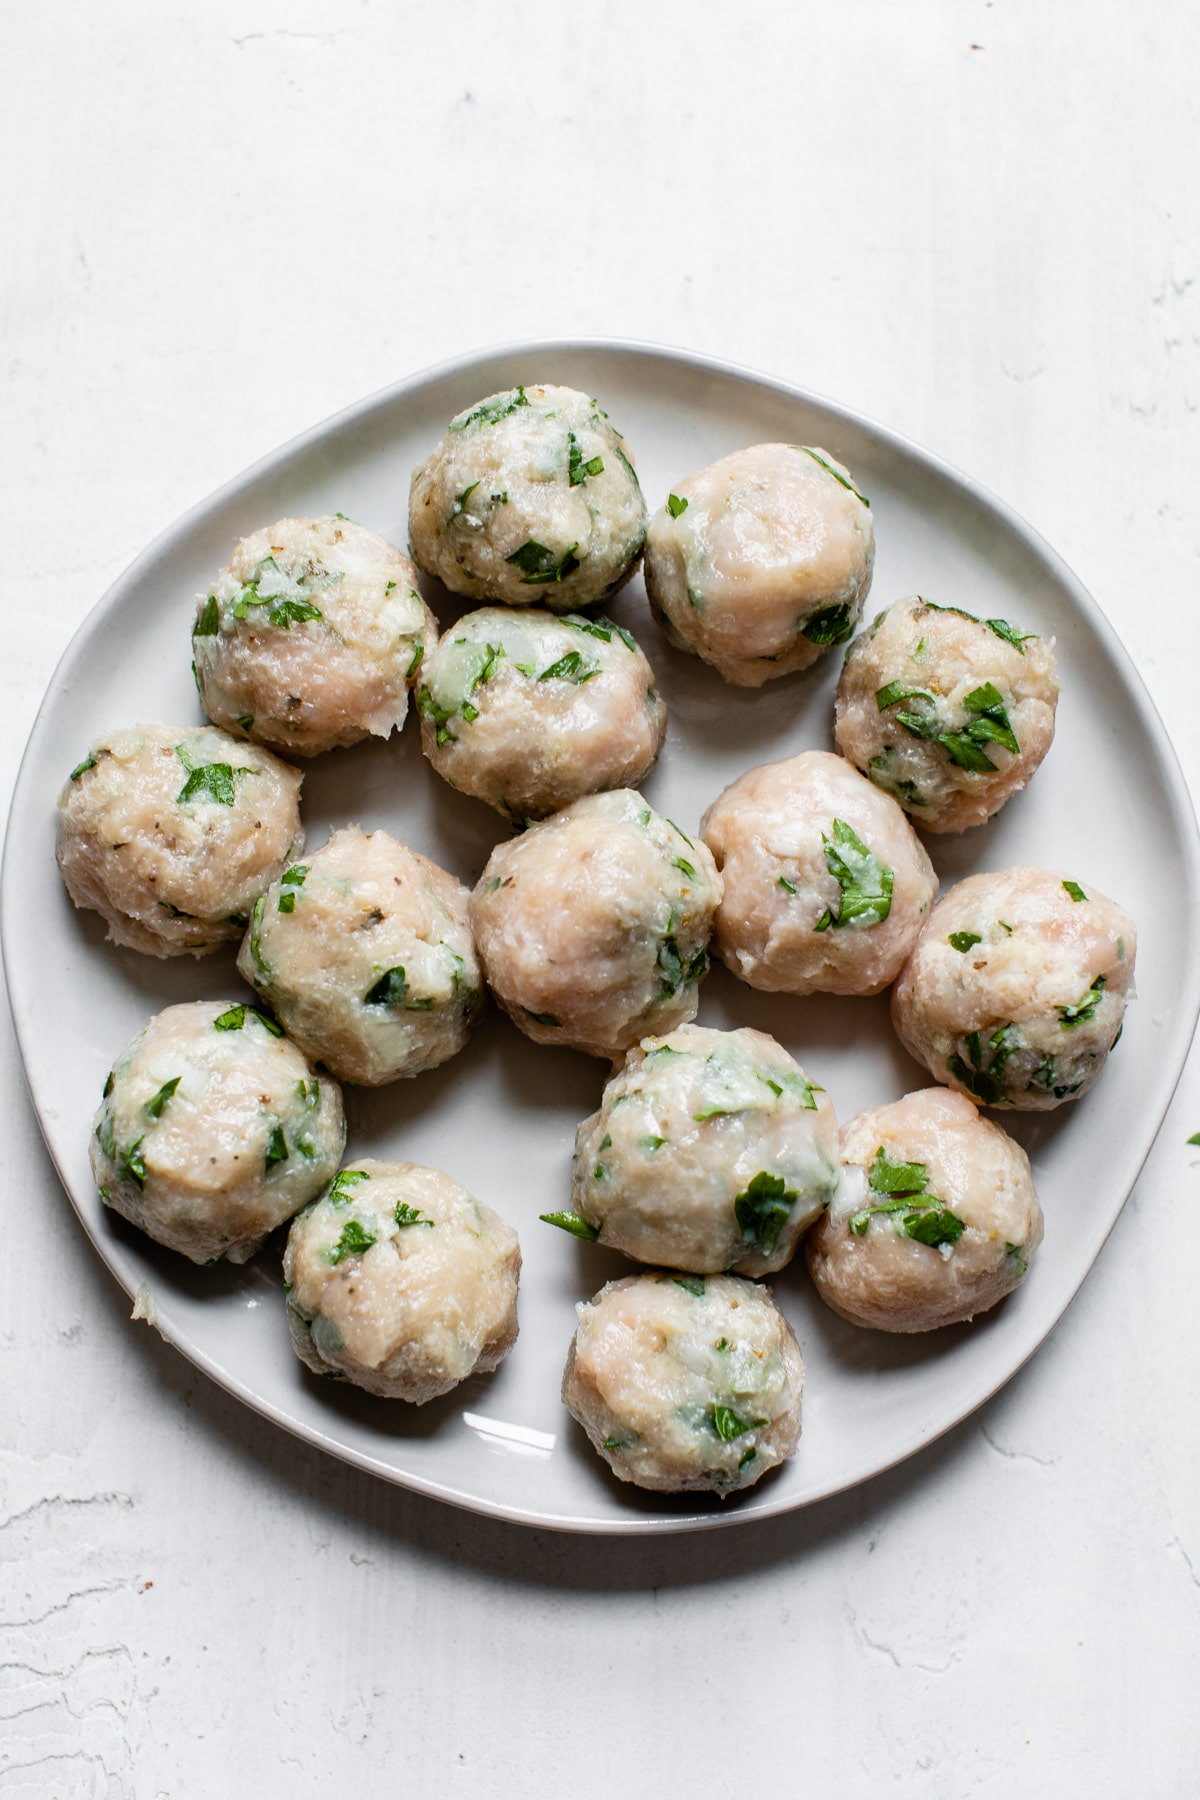 uncooked meatballs on a plate